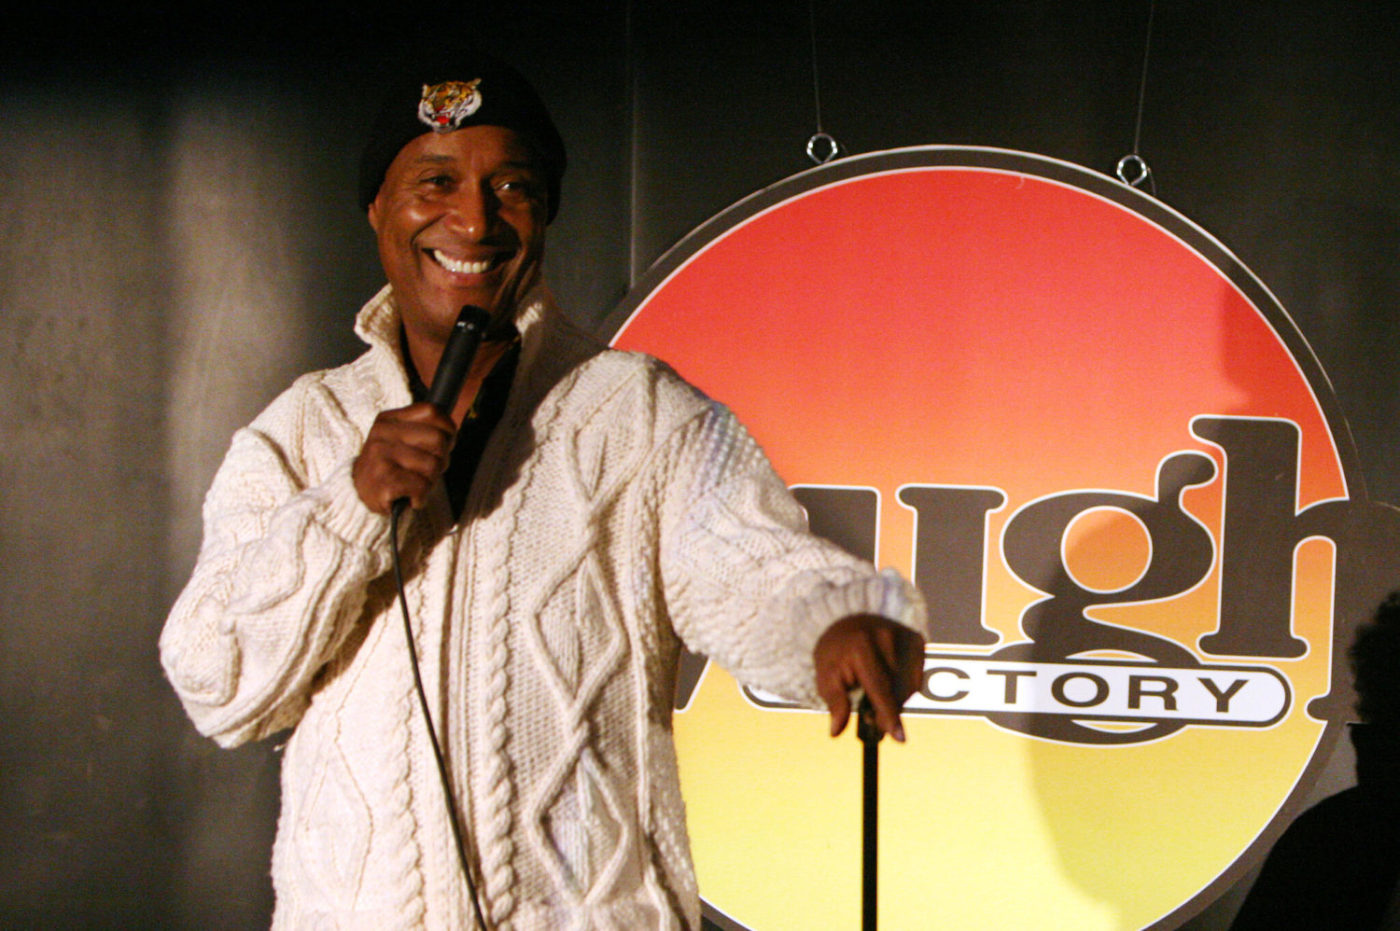 Paul-Mooney-performs-at-Hollywoods-Laugh-Factory-2007-by-Ruth-Fremson-1400x931, Paul Mooney: Black Panther of comedy, Culture Currents